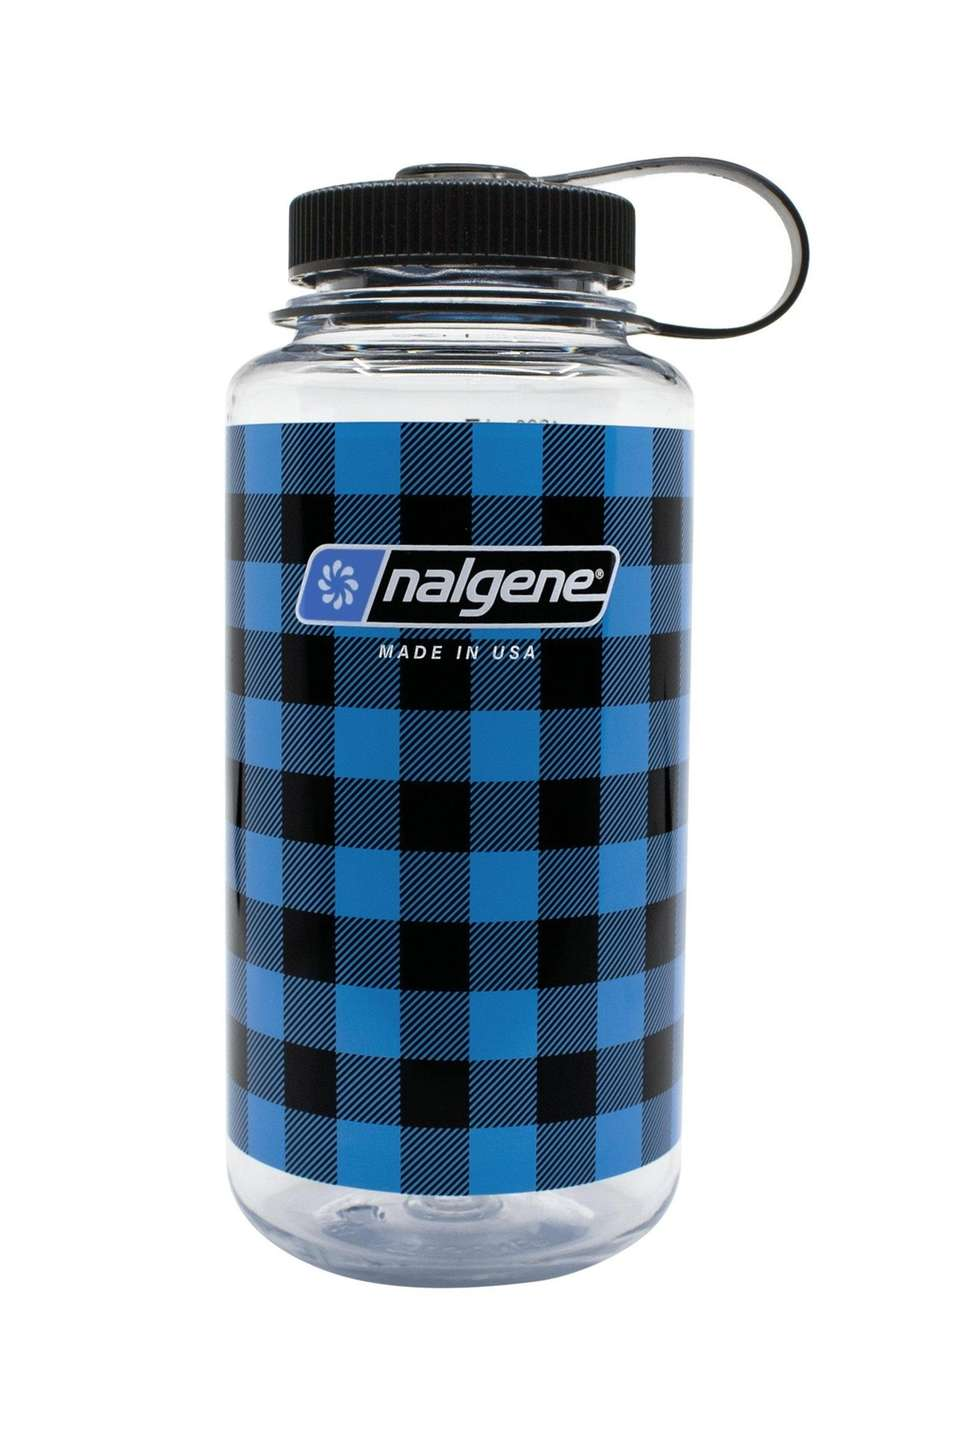 Nalgene has released four limited-edition plaid print, 32-ounce